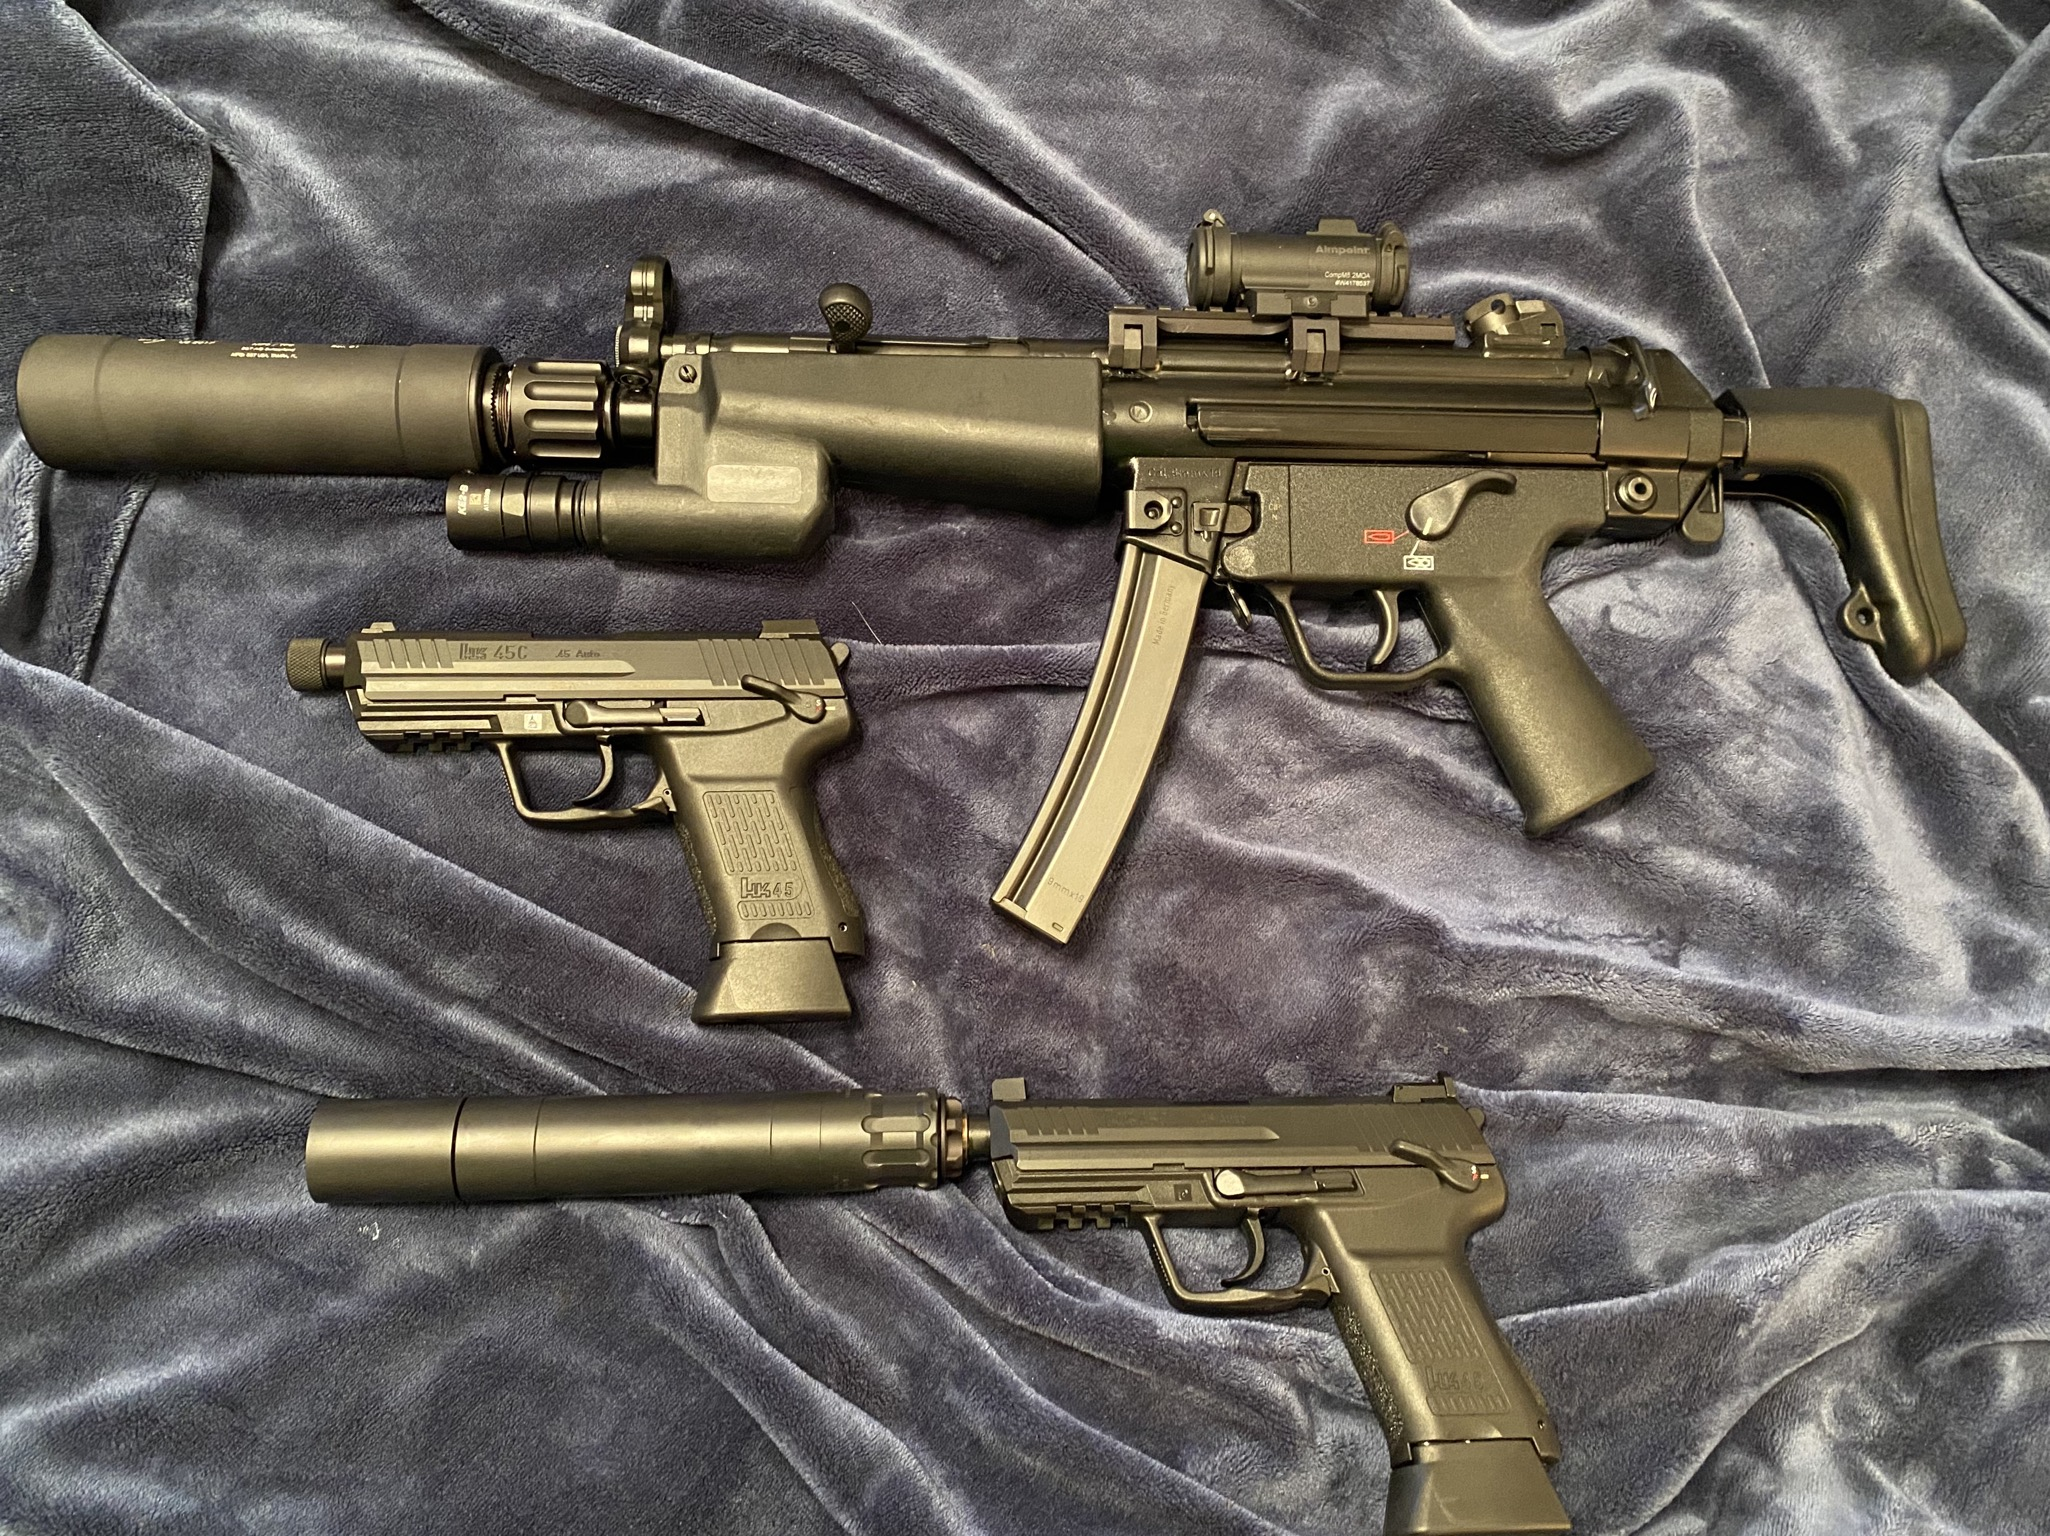 Photo Challenge!  Only NEW pics of your HK's-793bfc03-8ebf-49bf-8510-0acf59f7fe7c_1582866912993.jpeg